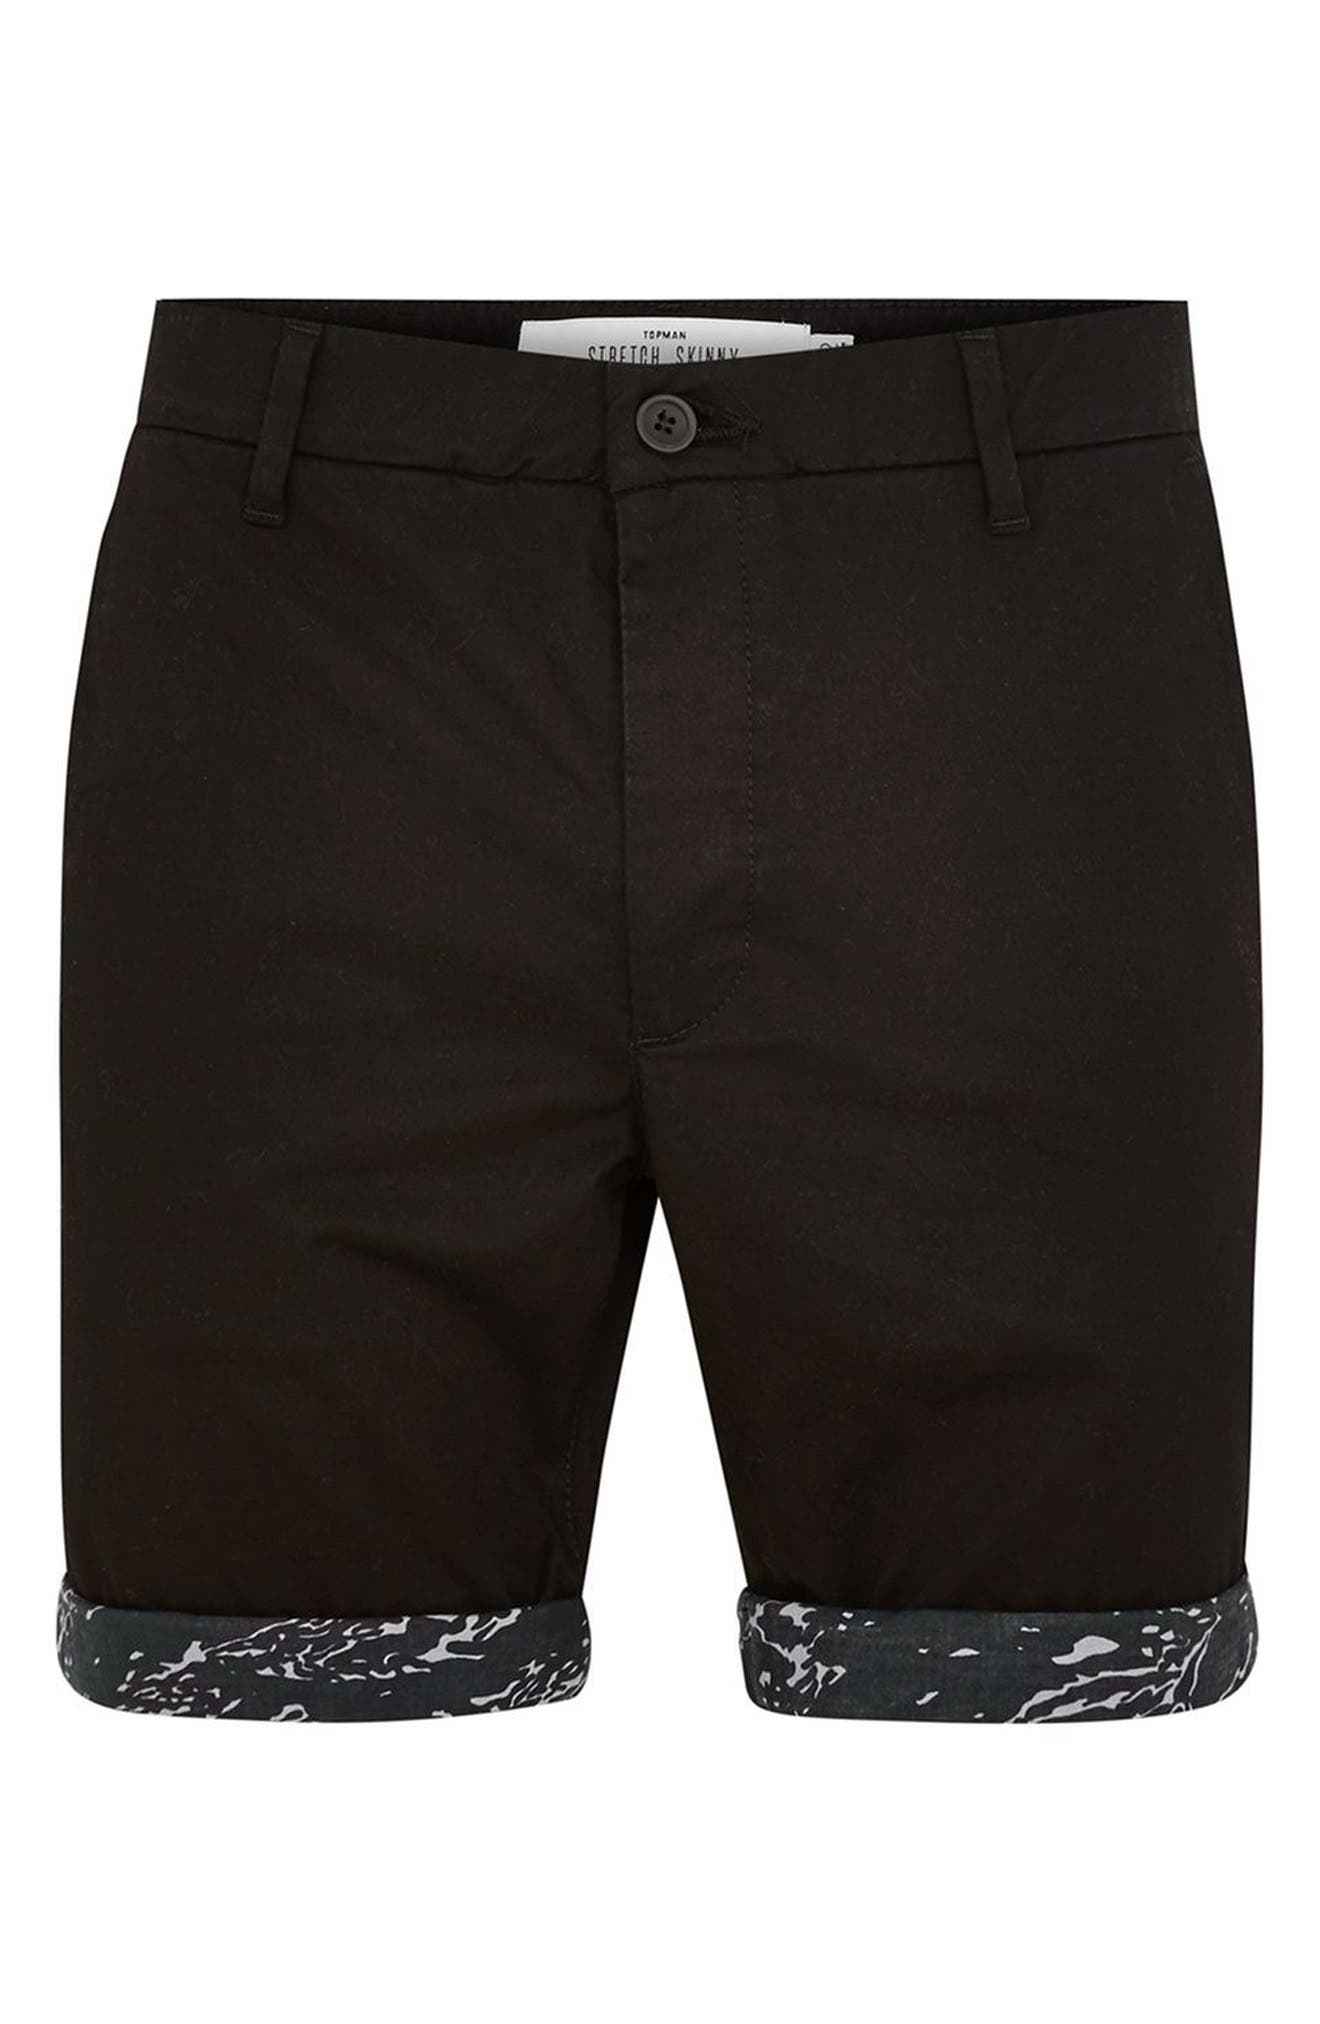 Stretch Skinny Fit Chino Shorts,                             Alternate thumbnail 3, color,                             BLACK MULTI